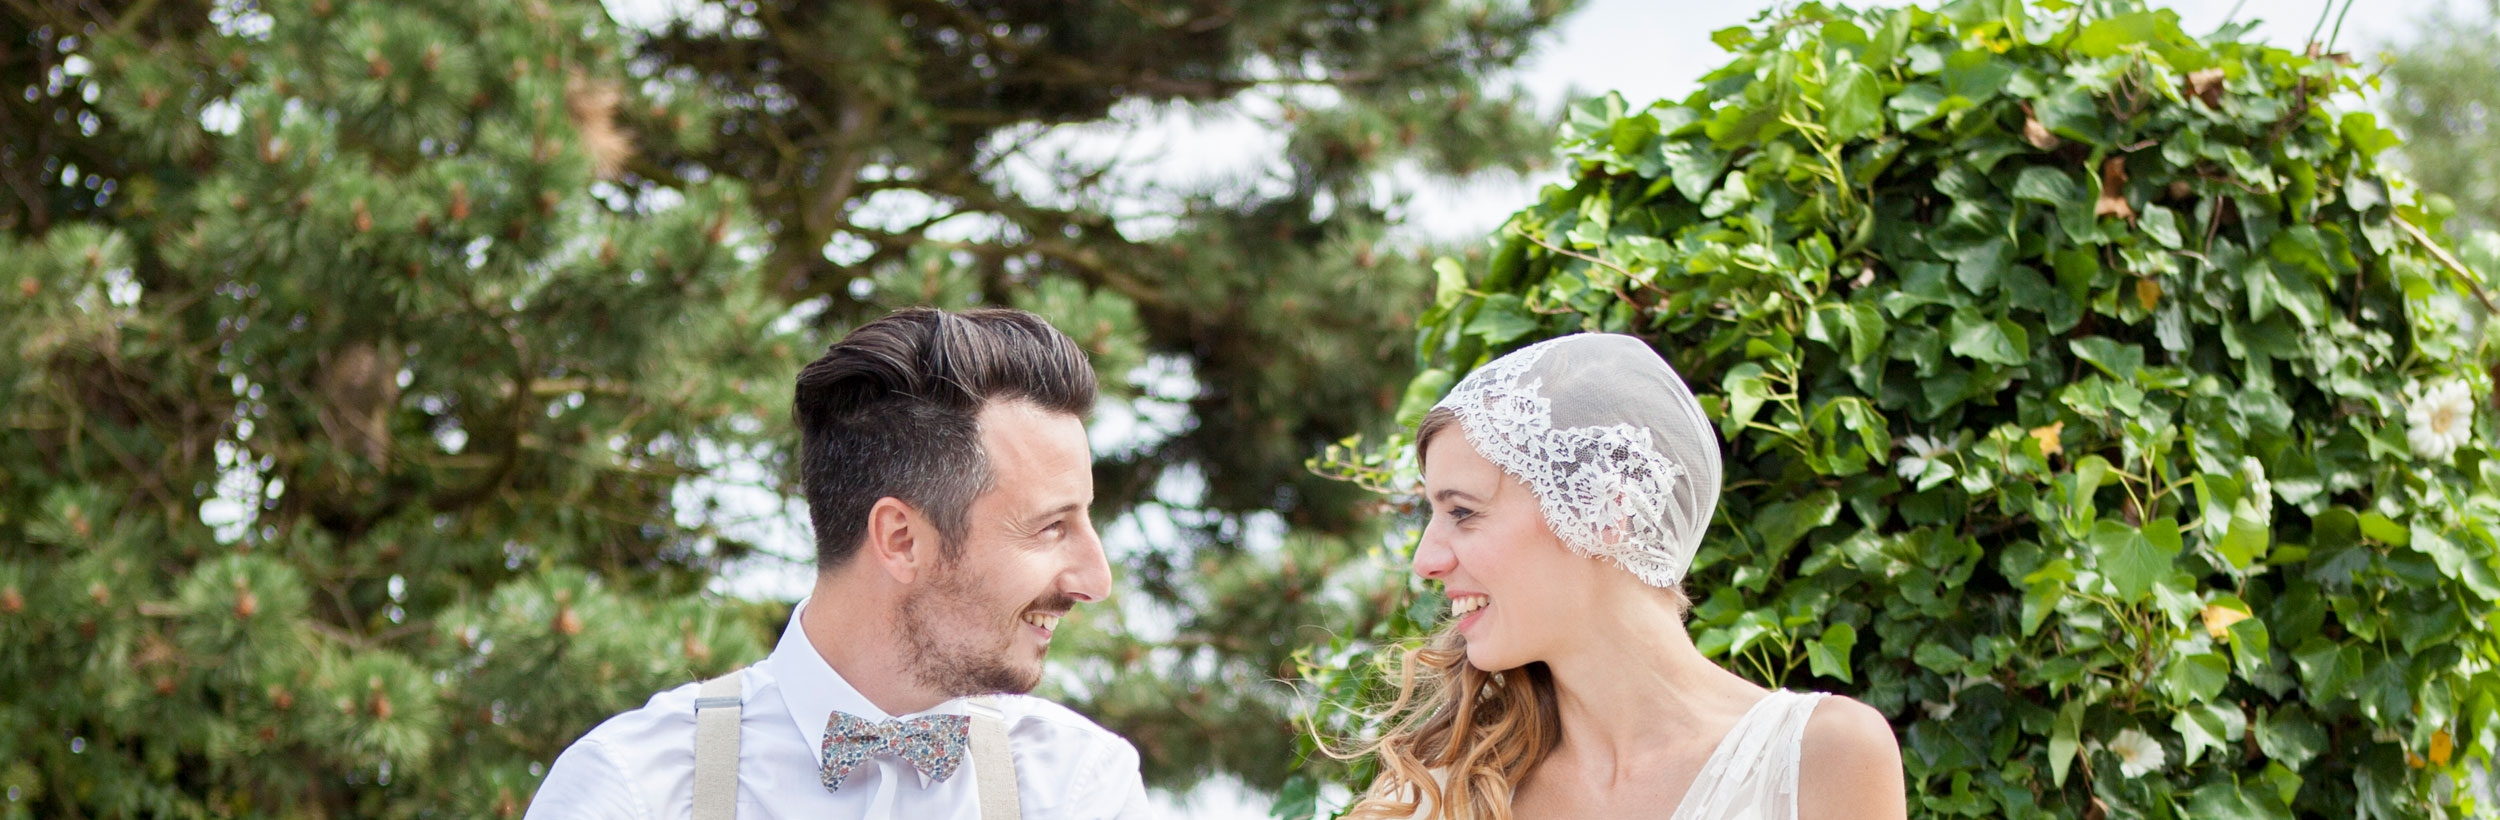 particuliers-mariage-oui-annemaxence-pagetop